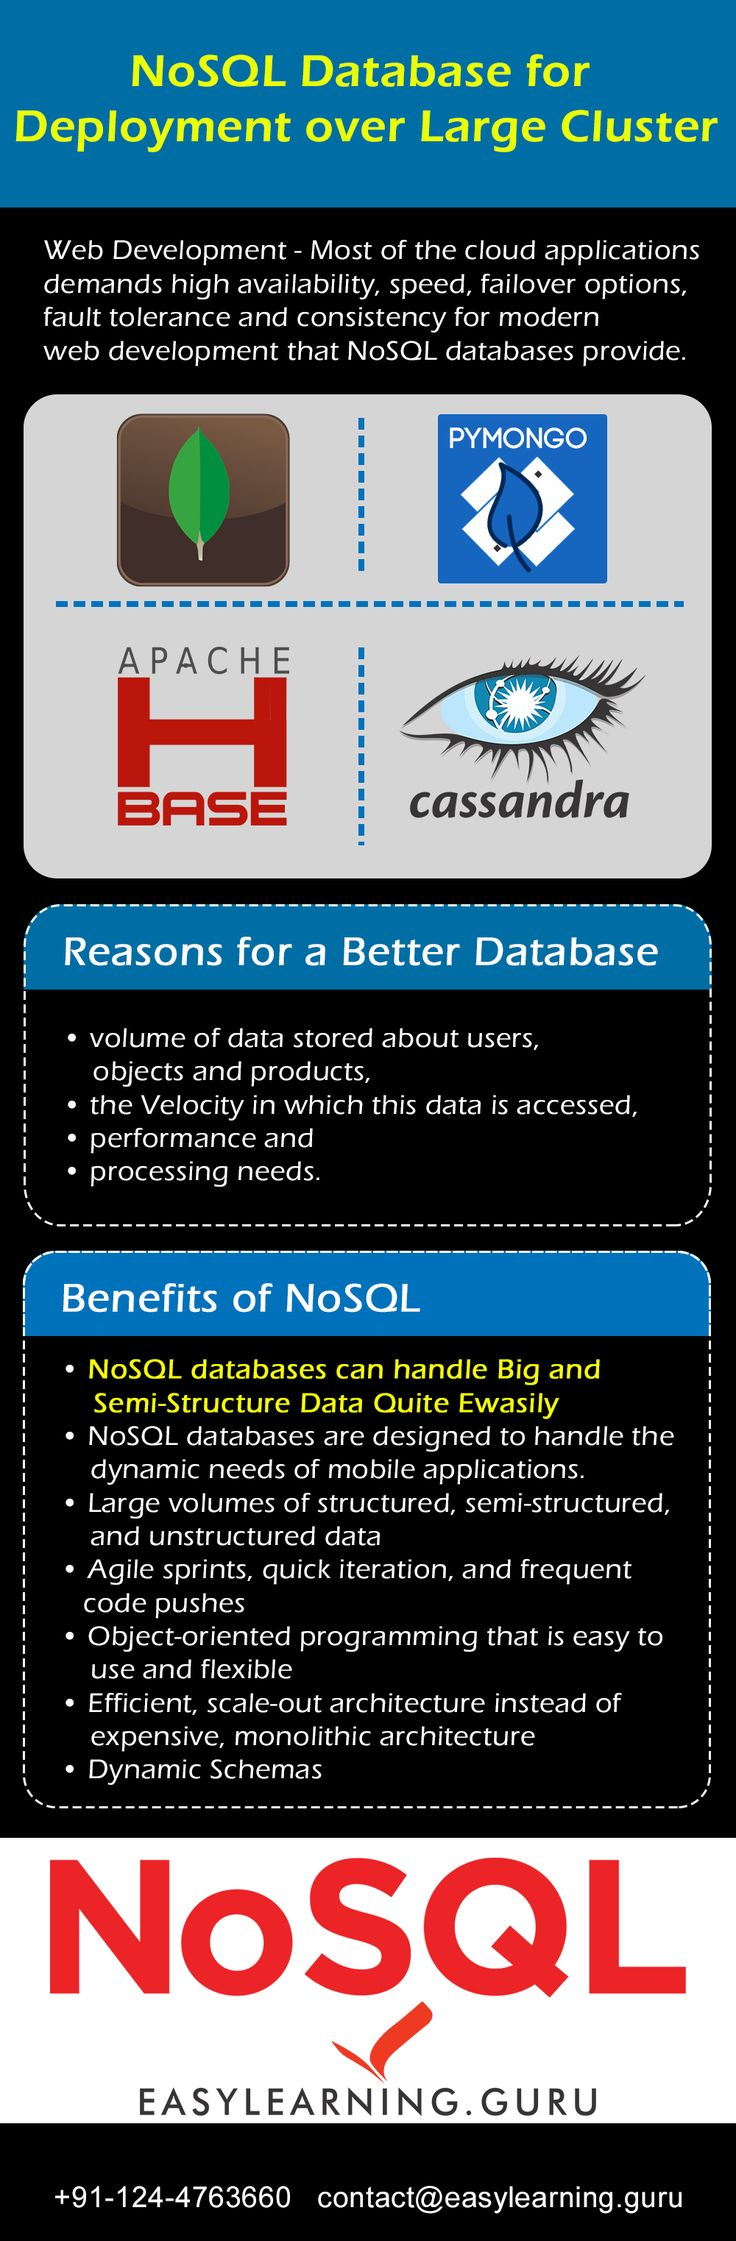 NoSQL is the future of databases. NoSQL databases can handle big and semi-structured data quite easily. We provide wide variety of courses covering various #NoSQL databases such as #Pymongo, #HBase, #MongoDB and #Cassandra.